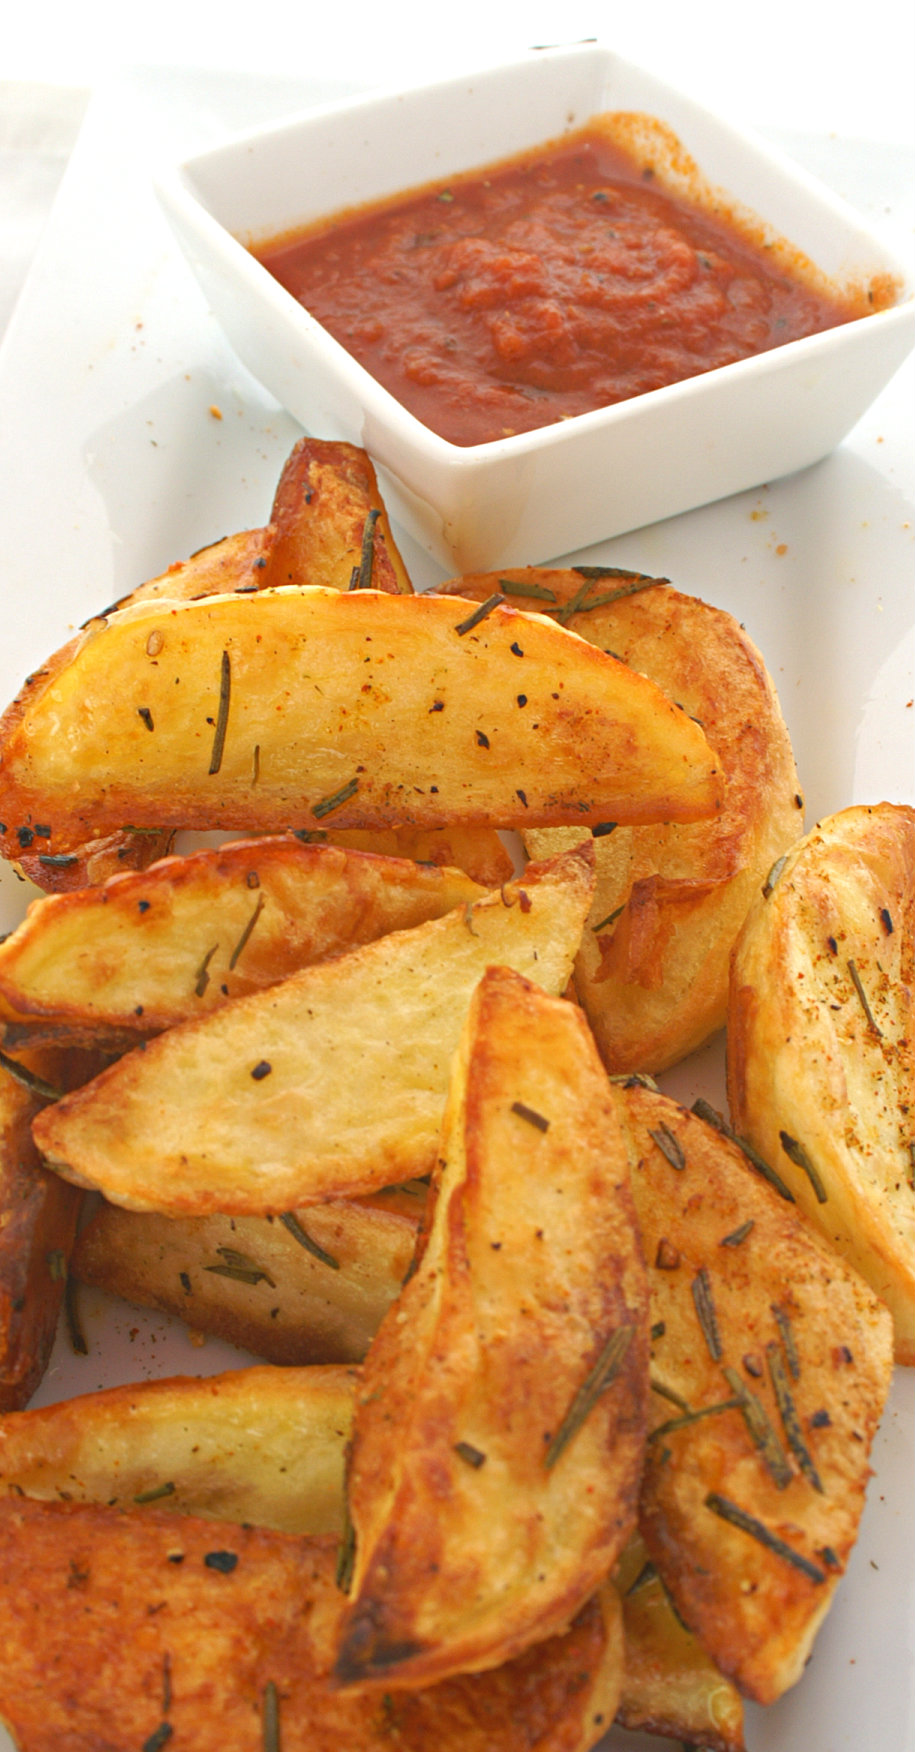 ... potato wedges spicy sweet potato wedges five etceteras roasted